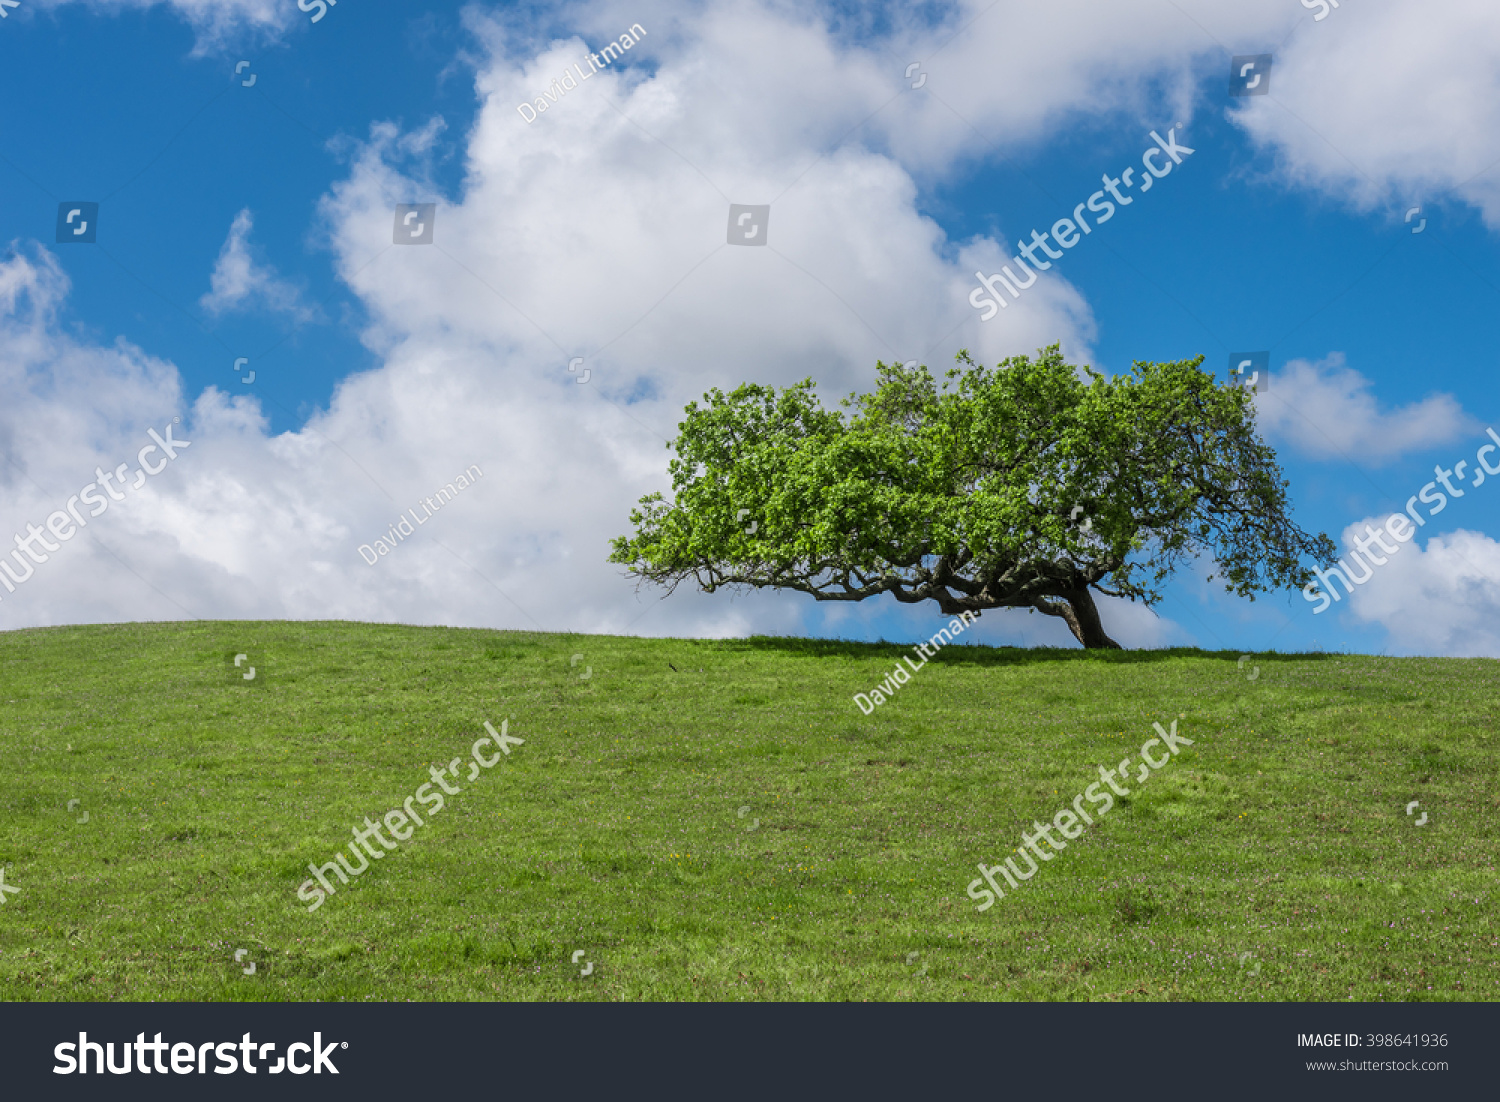 A lone coastal live oak tree (Quercus agrifolia) on a grassy hilltop with clouds and blue sky overhead, in the hills of Monterey, California, USA